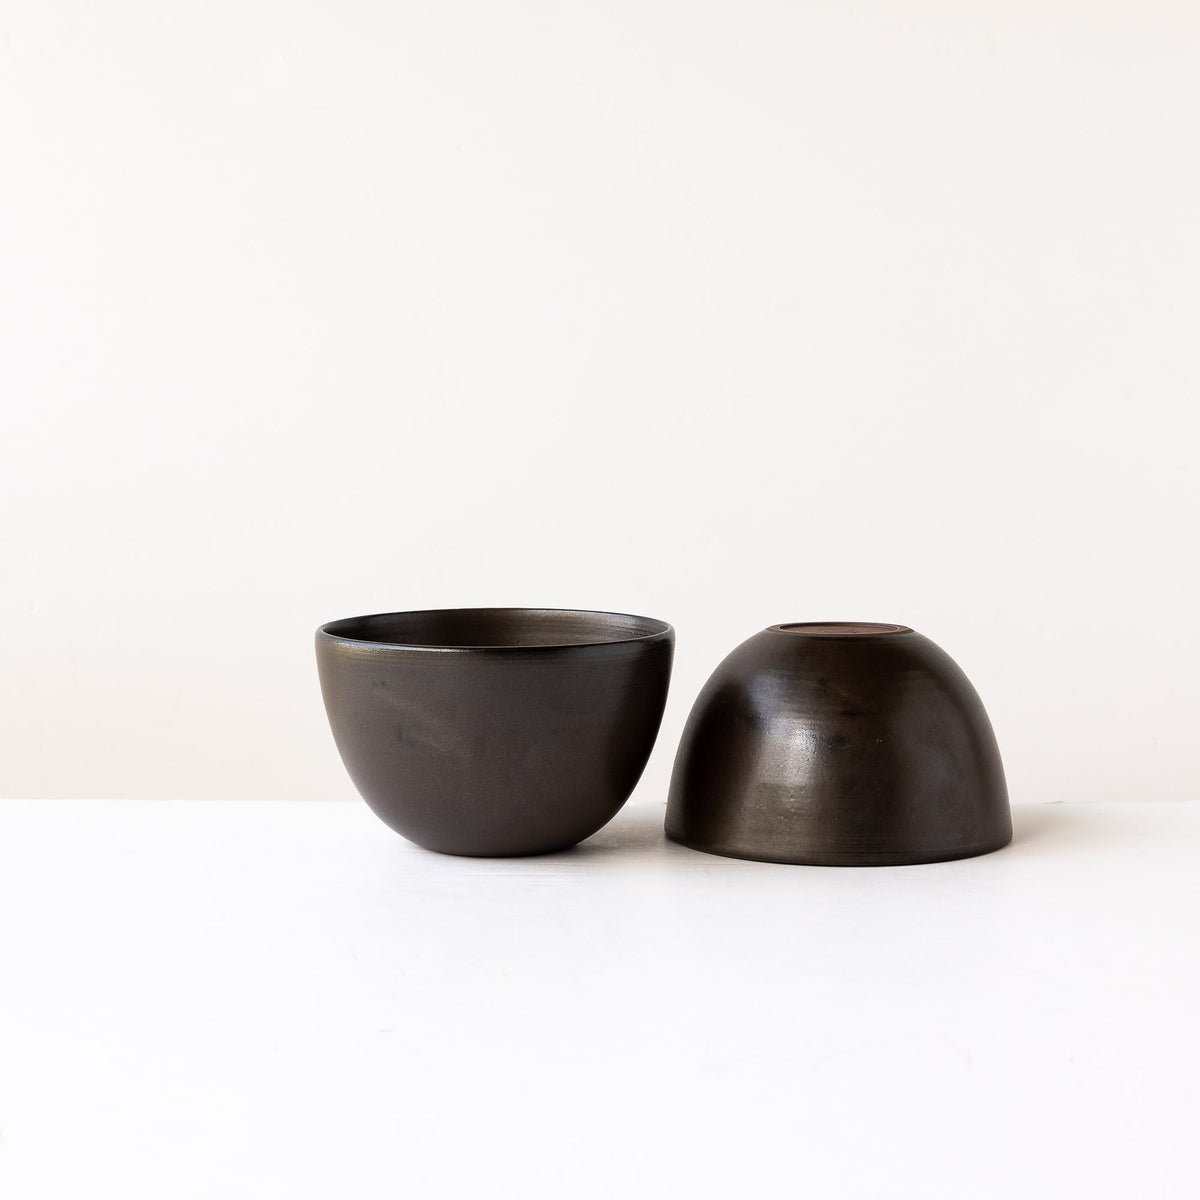 Two Black Handmade Stoneware Breakfast Bowls - Sold by Chic & Basta